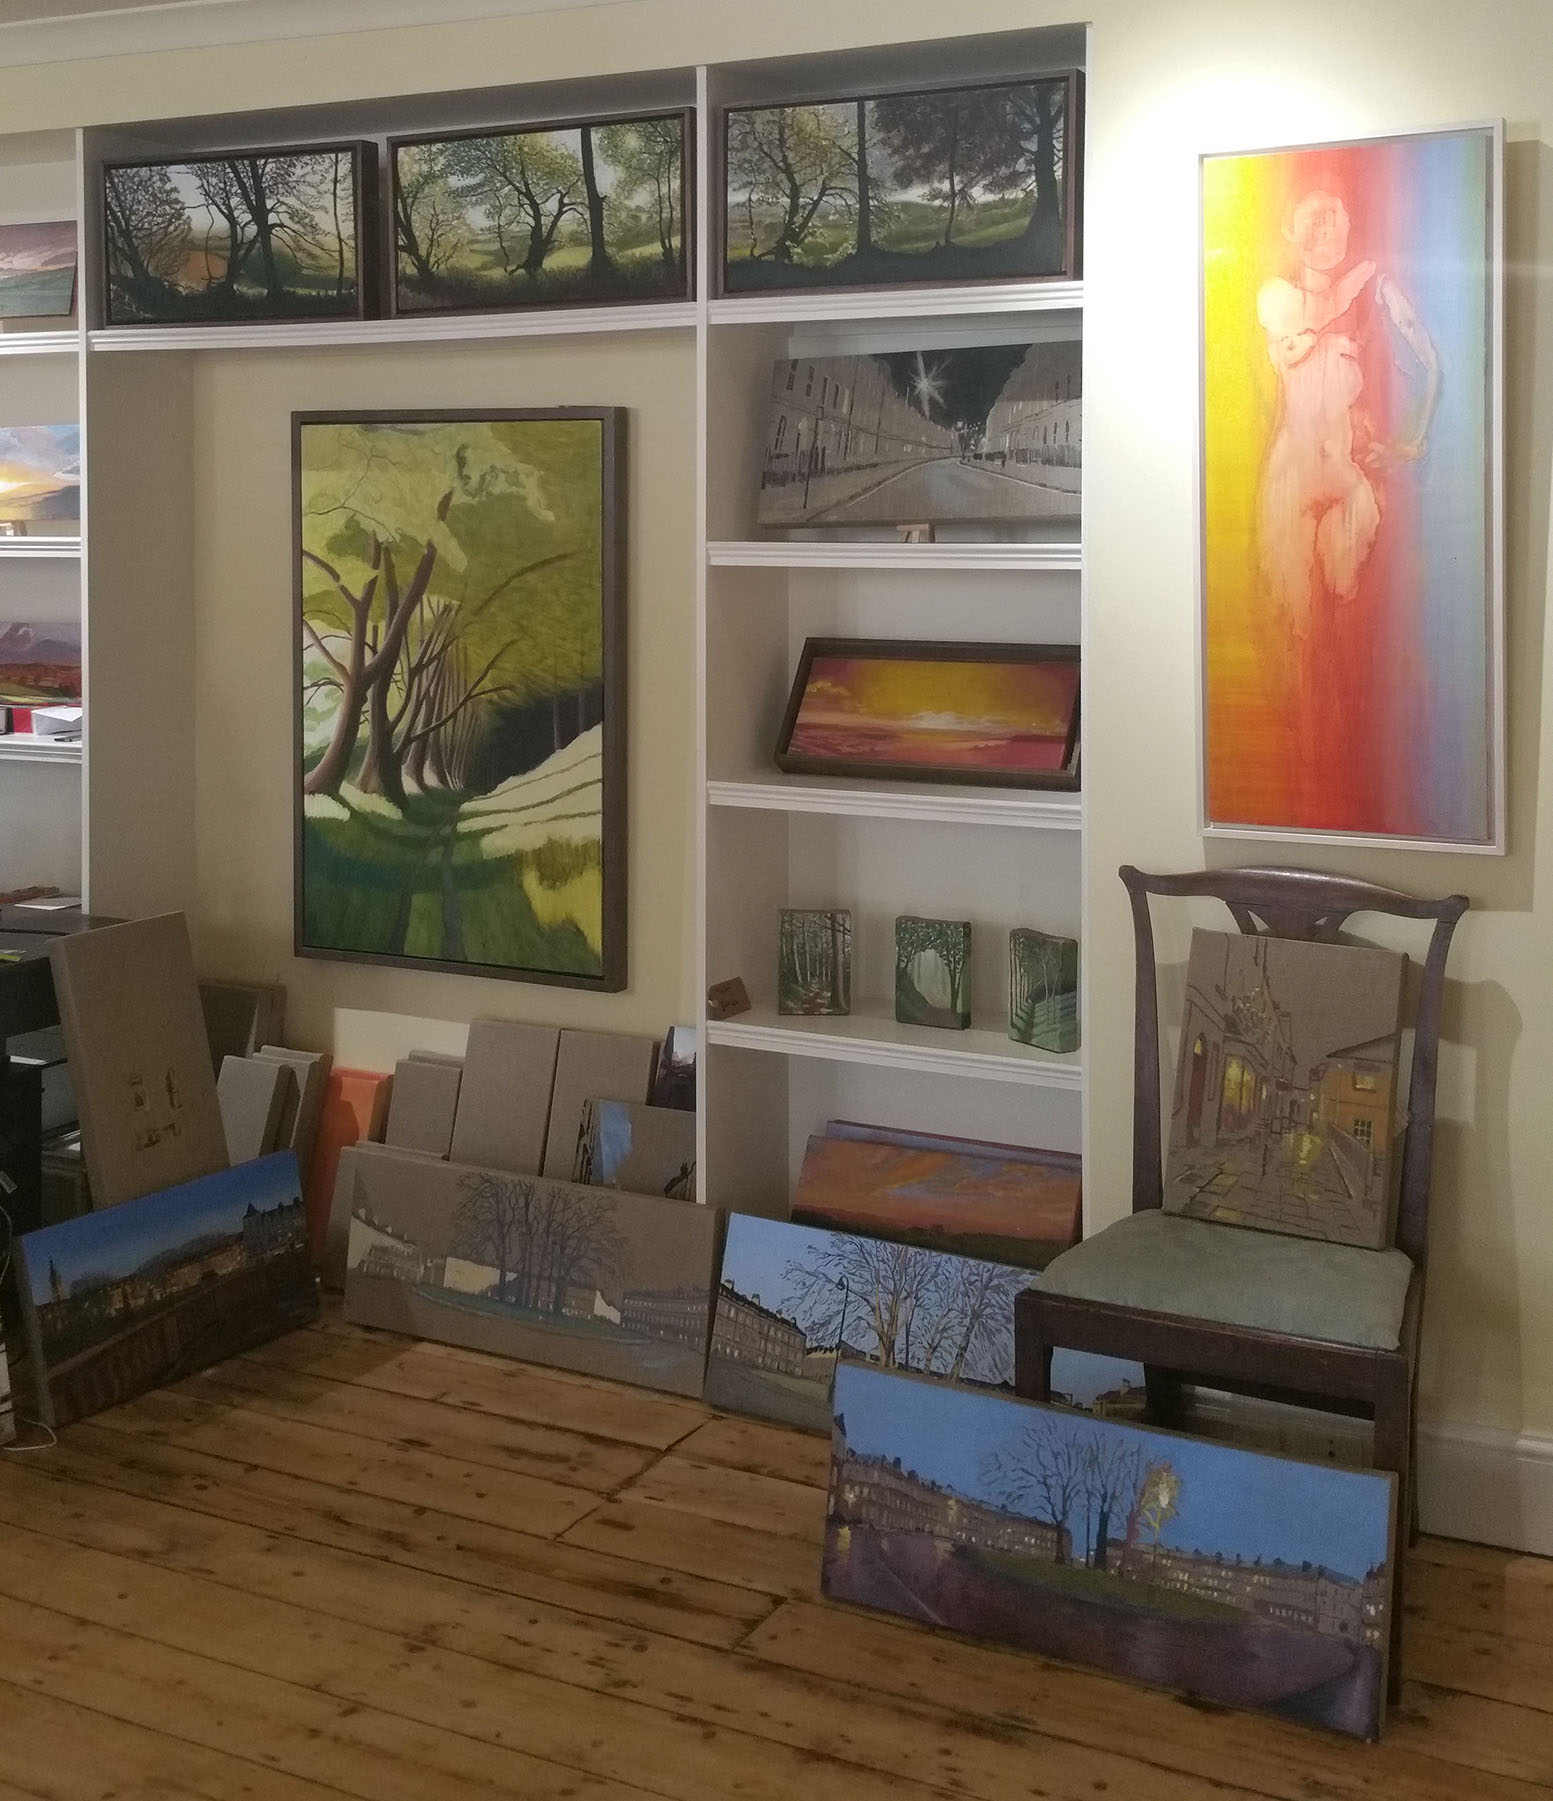 A selection of Kit's work on show.